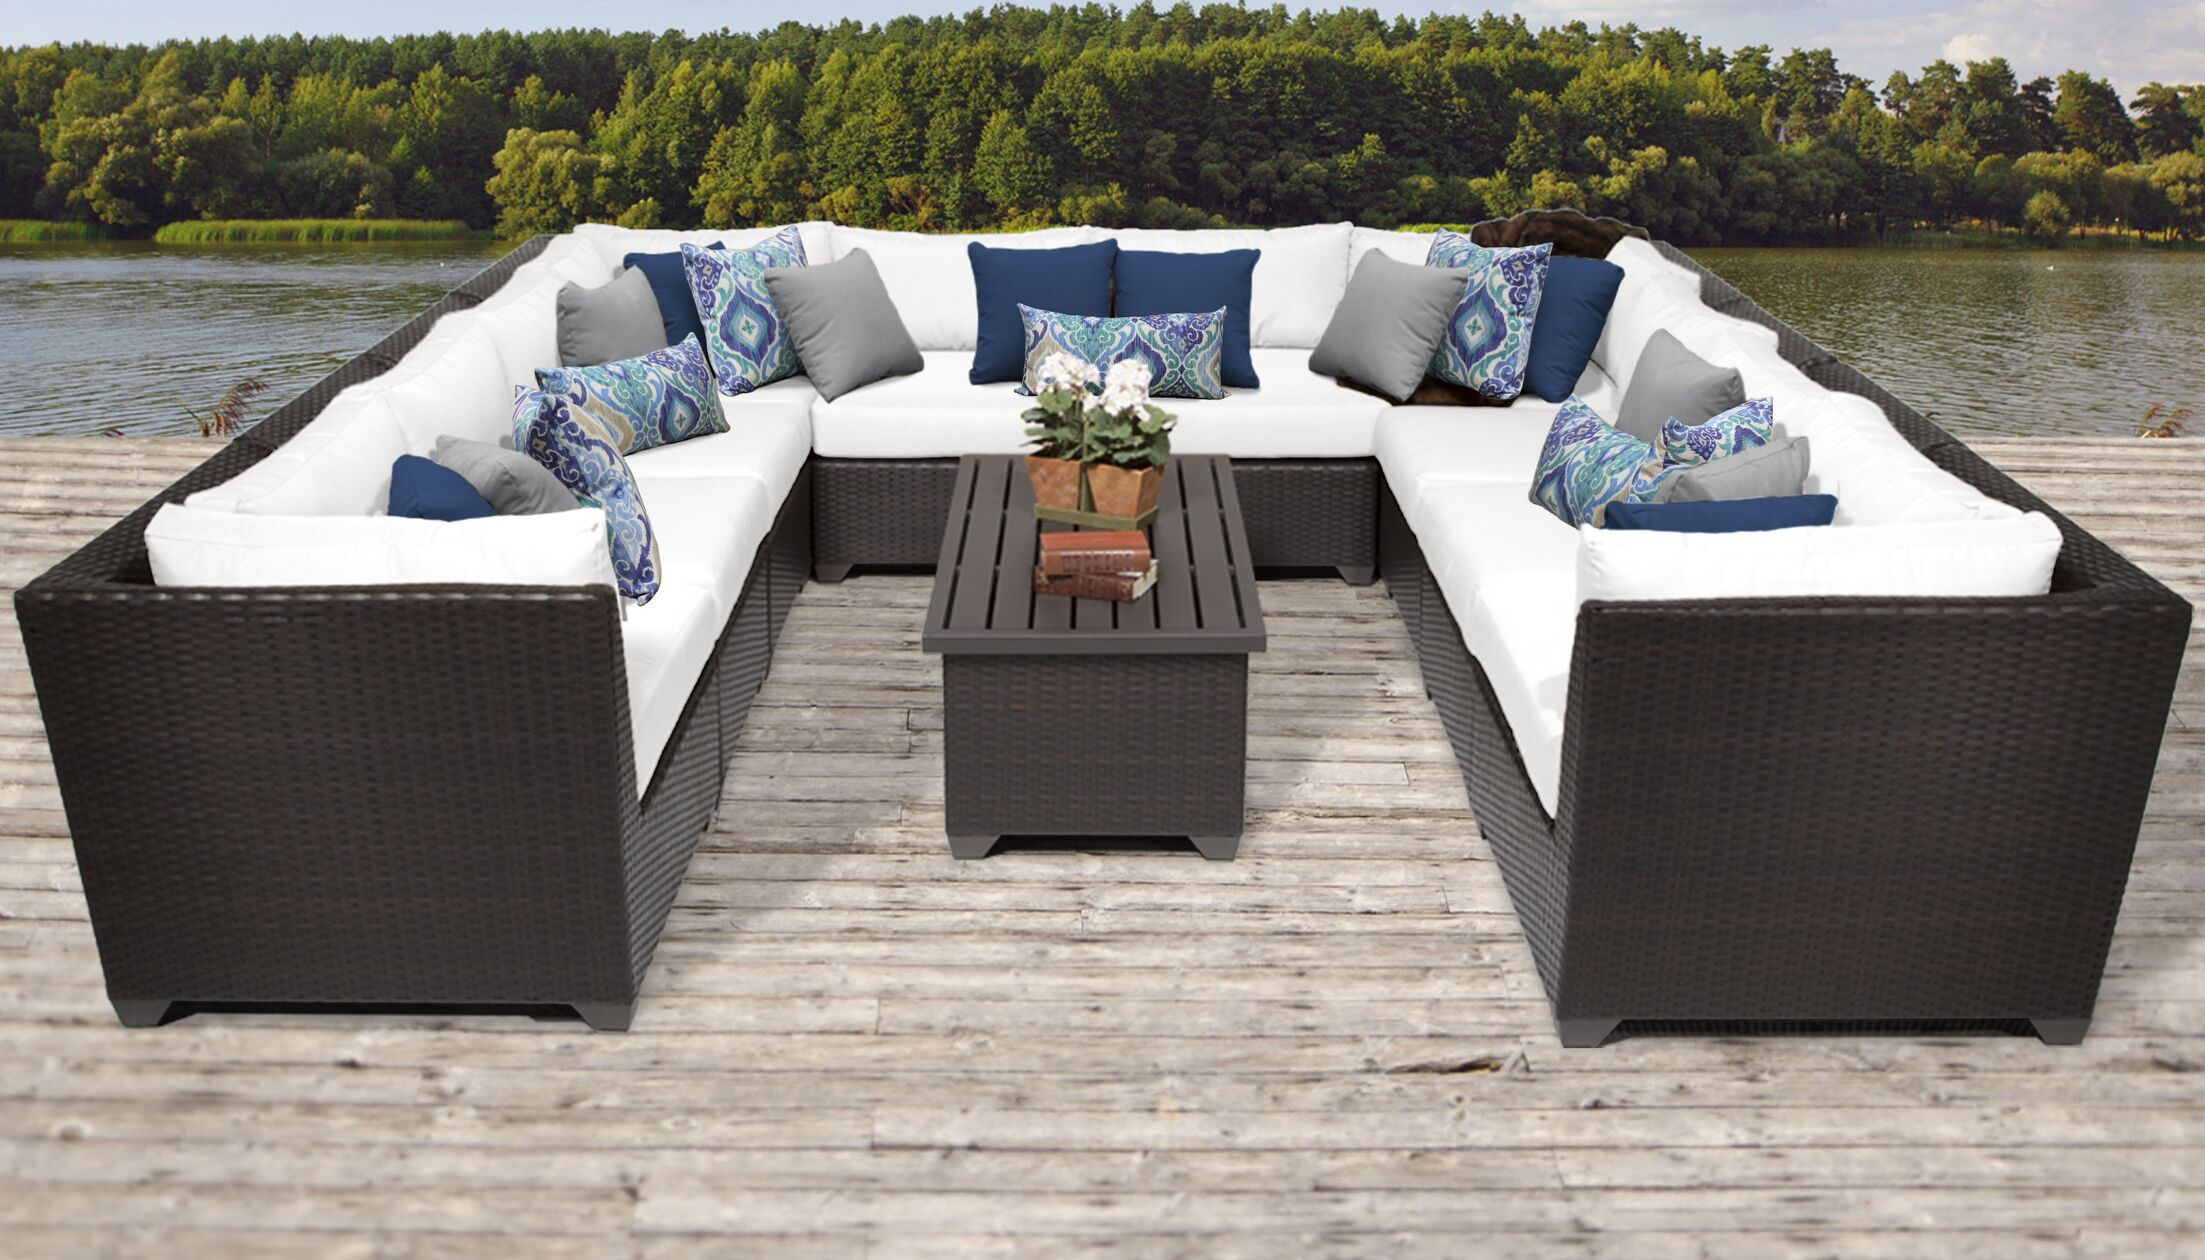 Barbados 11 Piece Rattan Sectional Set with Cushions Color: White